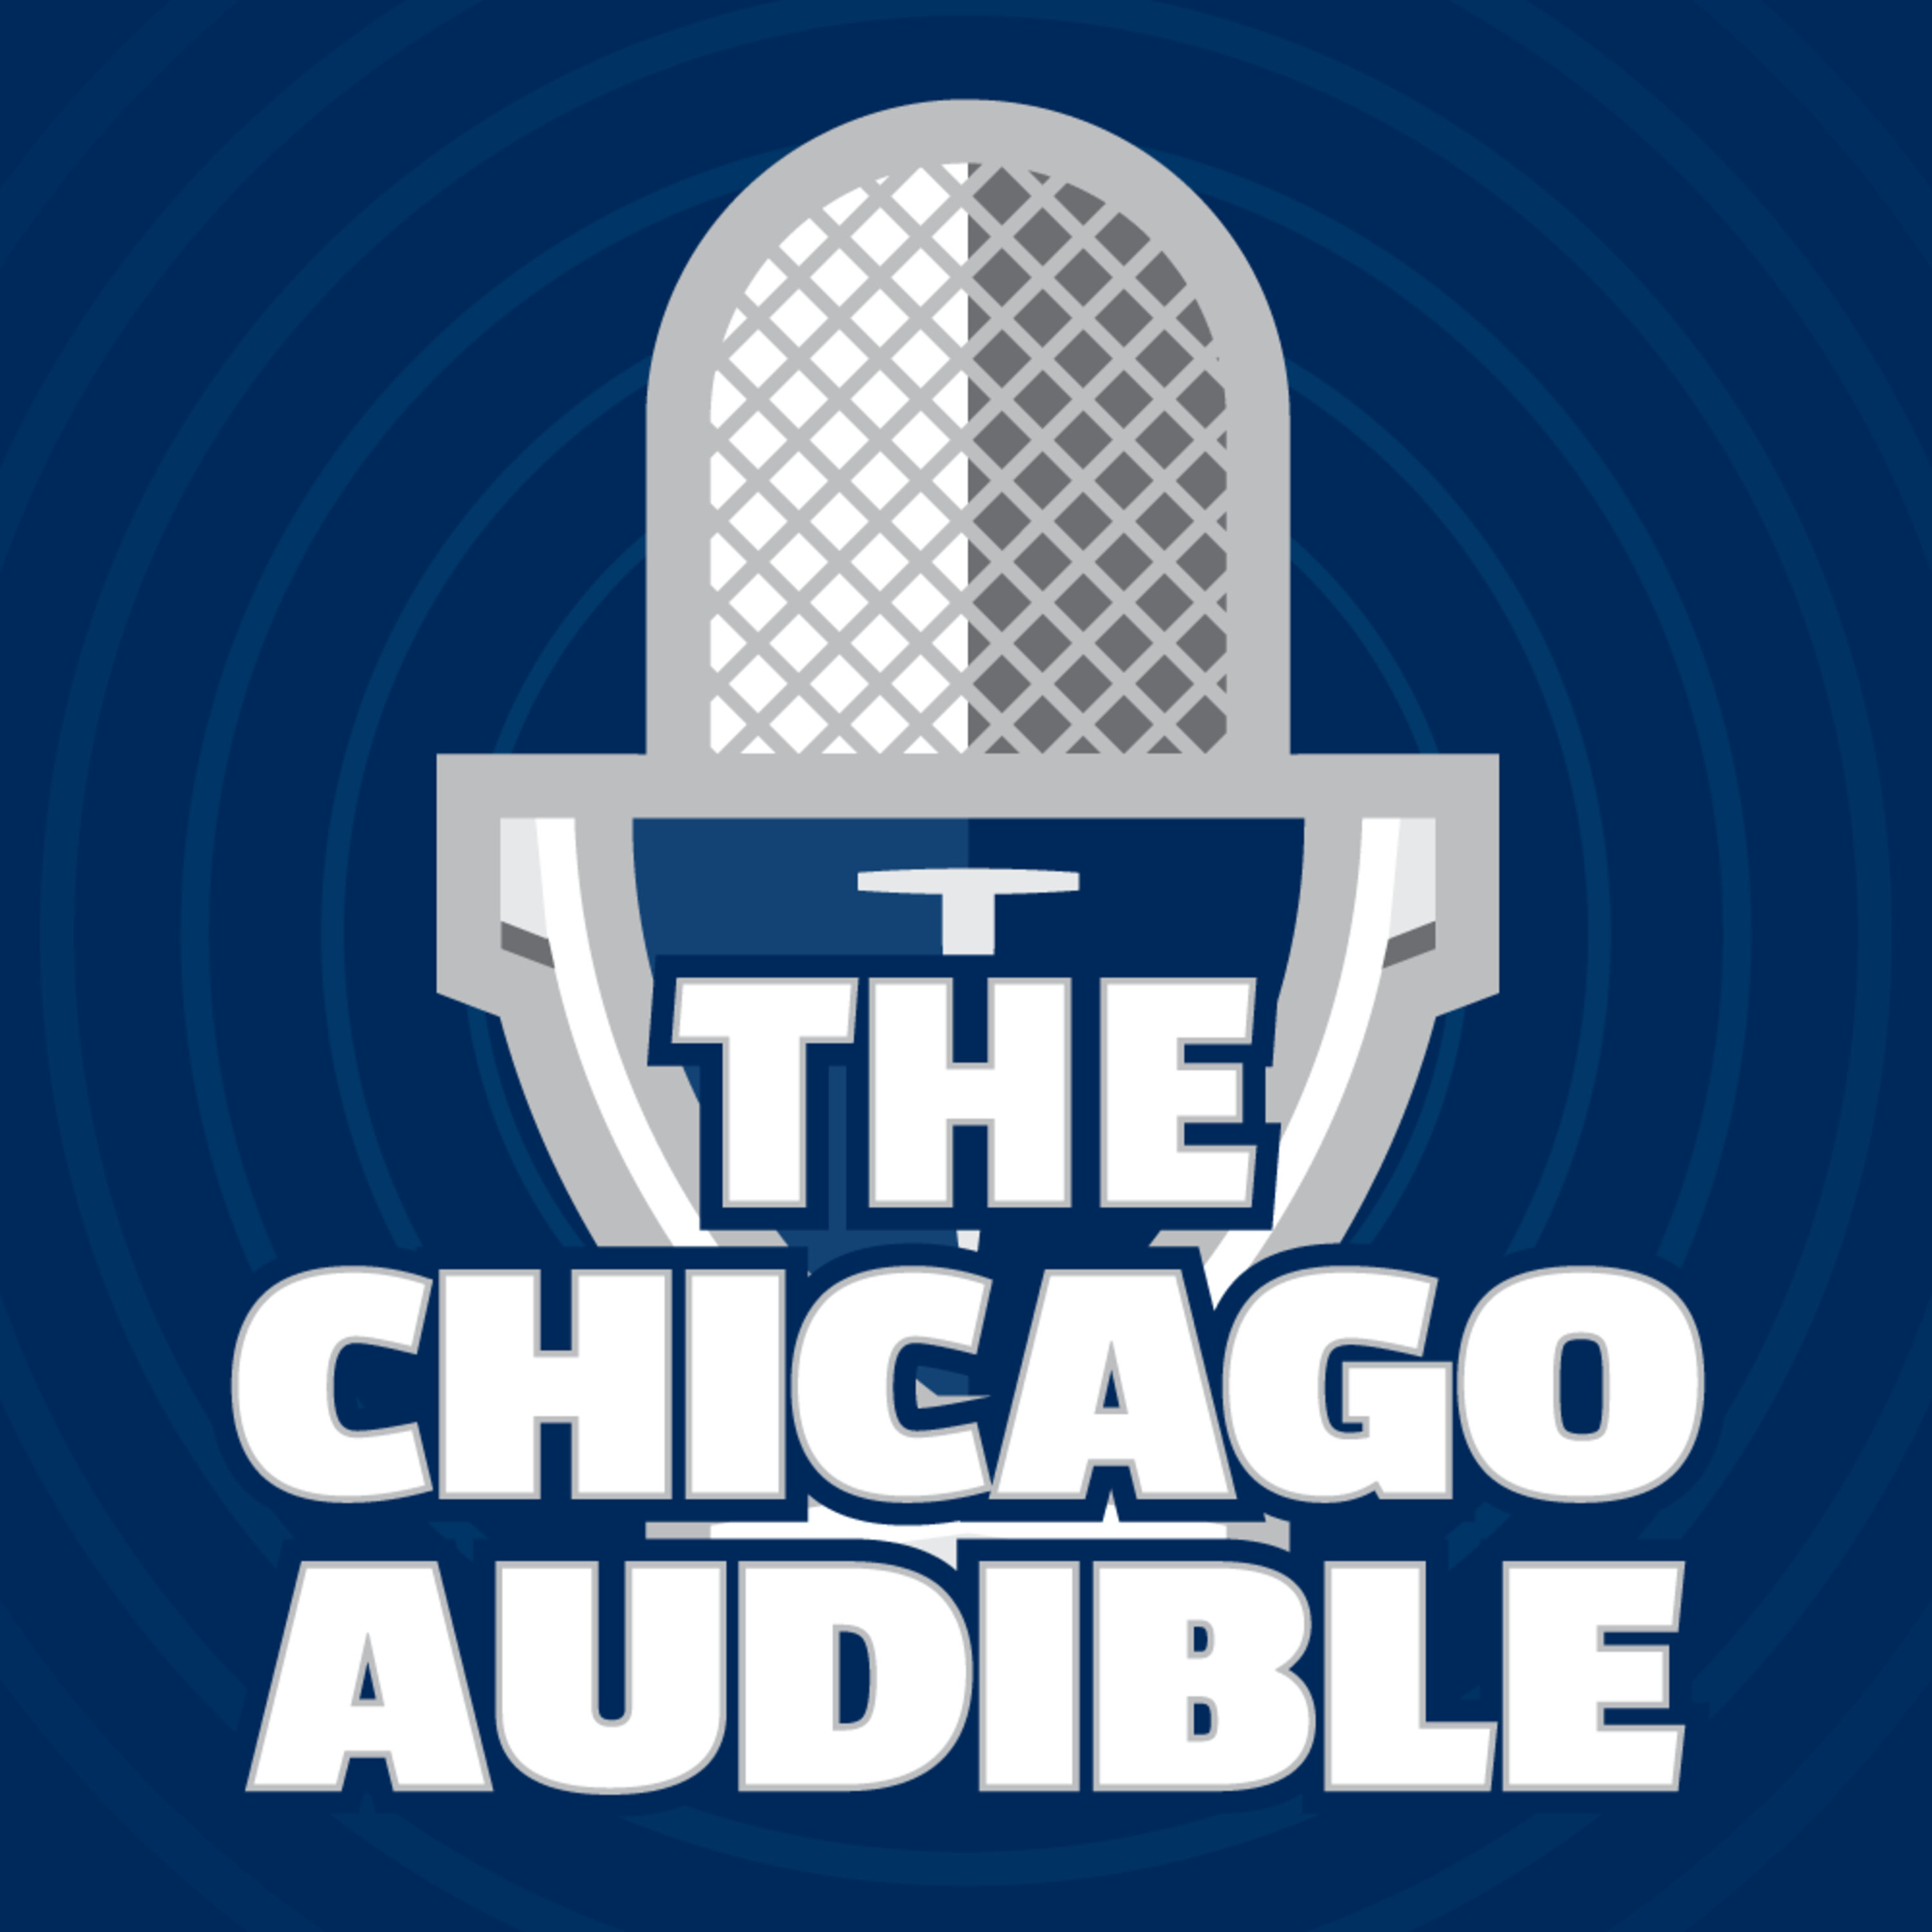 [529] Chicago Bears – Minnesota Vikings Postgame Show: David Montgomery Sets Multiple Career-Highs as Bears Win Second-Straight, Keeping Playoff Hopes Alive